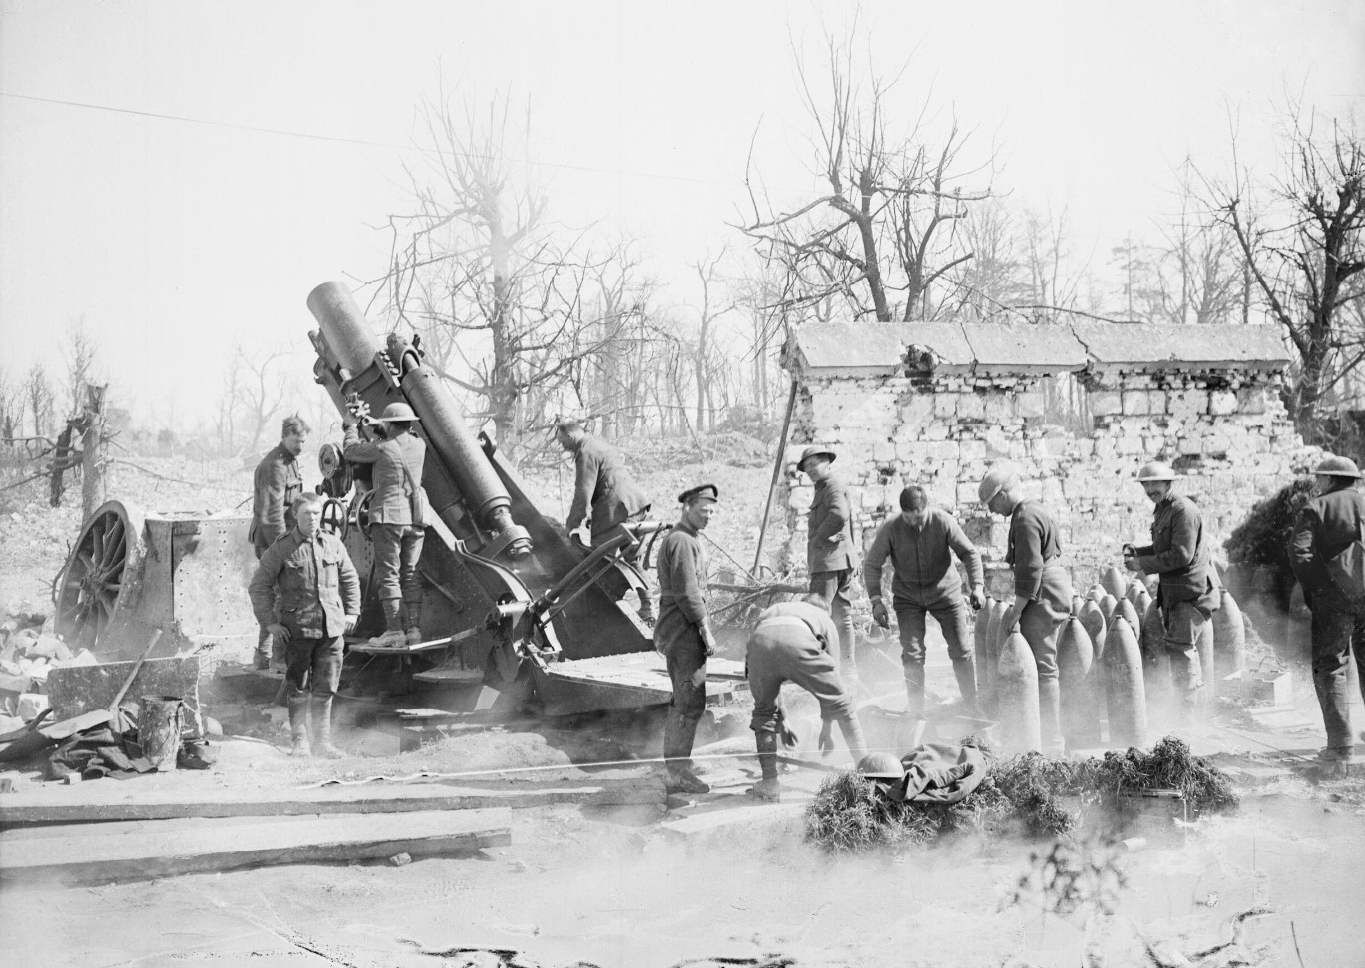 A 9.2 inch howitzer of the Royal Garrison Artillery in action in the ruins of Tilloy-les-Mofflaines, near Arras, April 1917 (photo: Lieutenant John Warwick Brooke, © IWM (Q 5221)). These photos of 9.2 inch howitzers and  the film  show the large box filled with earth on the same platform in front of the howitzer that was used to counterbalance the recoil; this was one reason why the 9.2s were so accurate. In harsh winter conditions they were sometimes filled up with water instead, and if the Battery had to move quickly they were often left behind or blown up as they would take too long to empty.